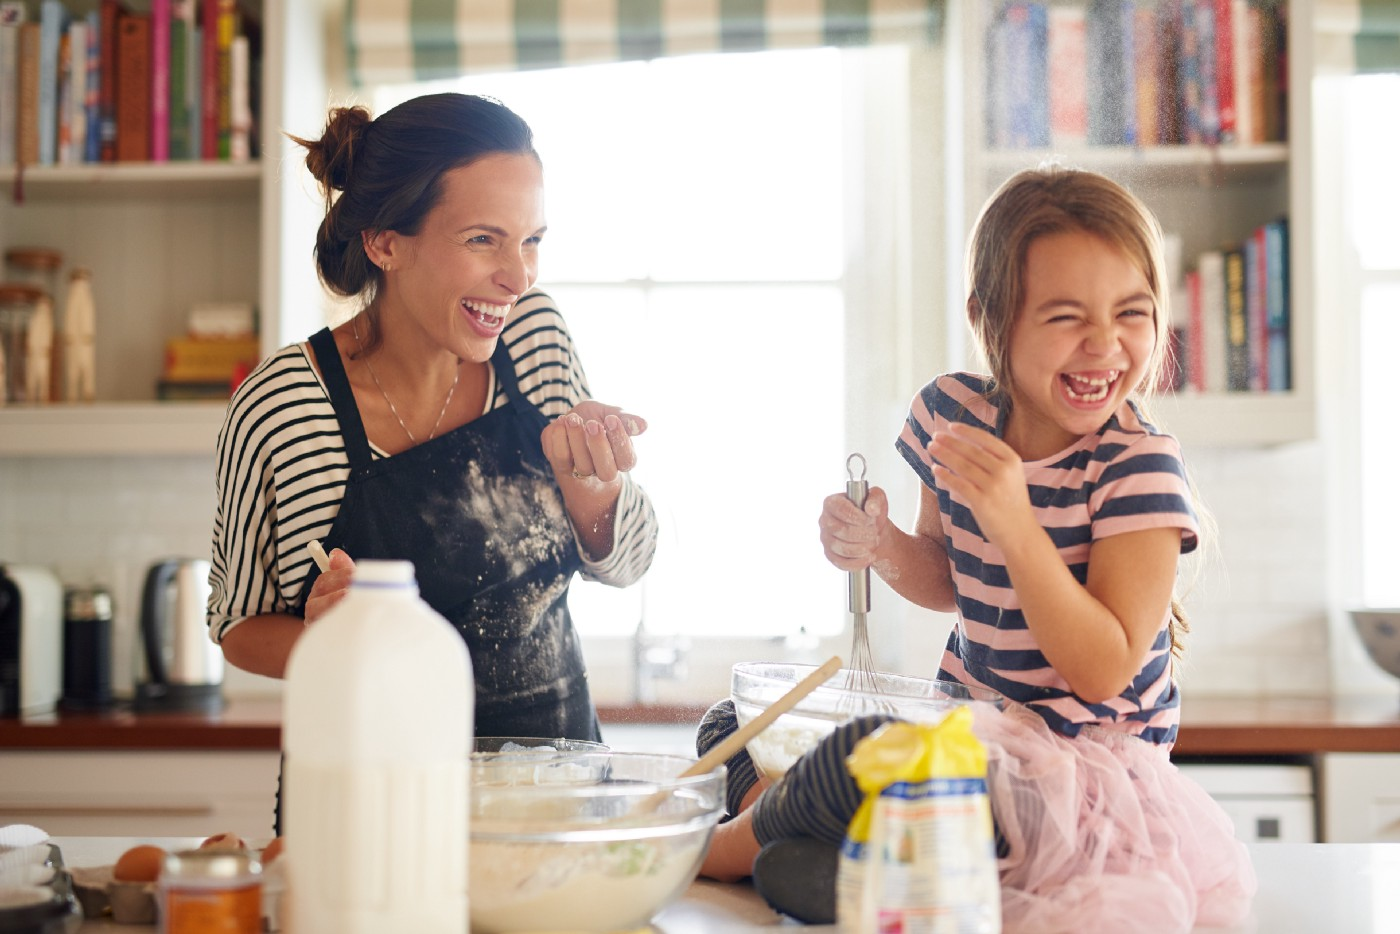 Shot of a little girl having fun baking with her mother in the kitchen